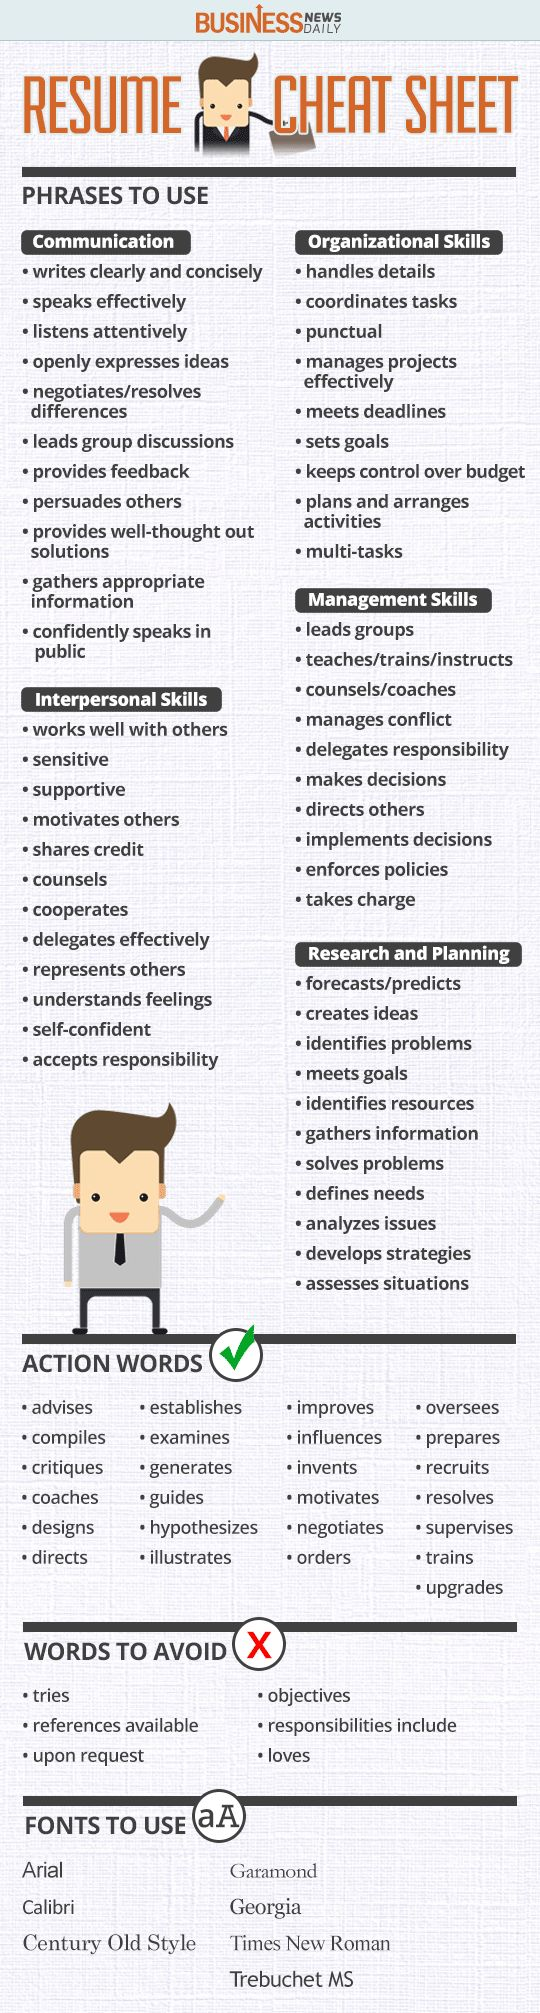 Opposenewapstandardsus  Unique  Ideas About Resume On Pinterest  Cv Format Resume Cv And  With Lovely Resume Cheat Sheet Infographic Andrews Almost Done With A Complete Unit On Employment Which With Lovely Nurse Case Manager Resume Also District Manager Resume Sample In Addition Out Of College Resume And High School Resumes For College As Well As What Should A Professional Resume Look Like Additionally Resume Summary Vs Objective From Pinterestcom With Opposenewapstandardsus  Lovely  Ideas About Resume On Pinterest  Cv Format Resume Cv And  With Lovely Resume Cheat Sheet Infographic Andrews Almost Done With A Complete Unit On Employment Which And Unique Nurse Case Manager Resume Also District Manager Resume Sample In Addition Out Of College Resume From Pinterestcom